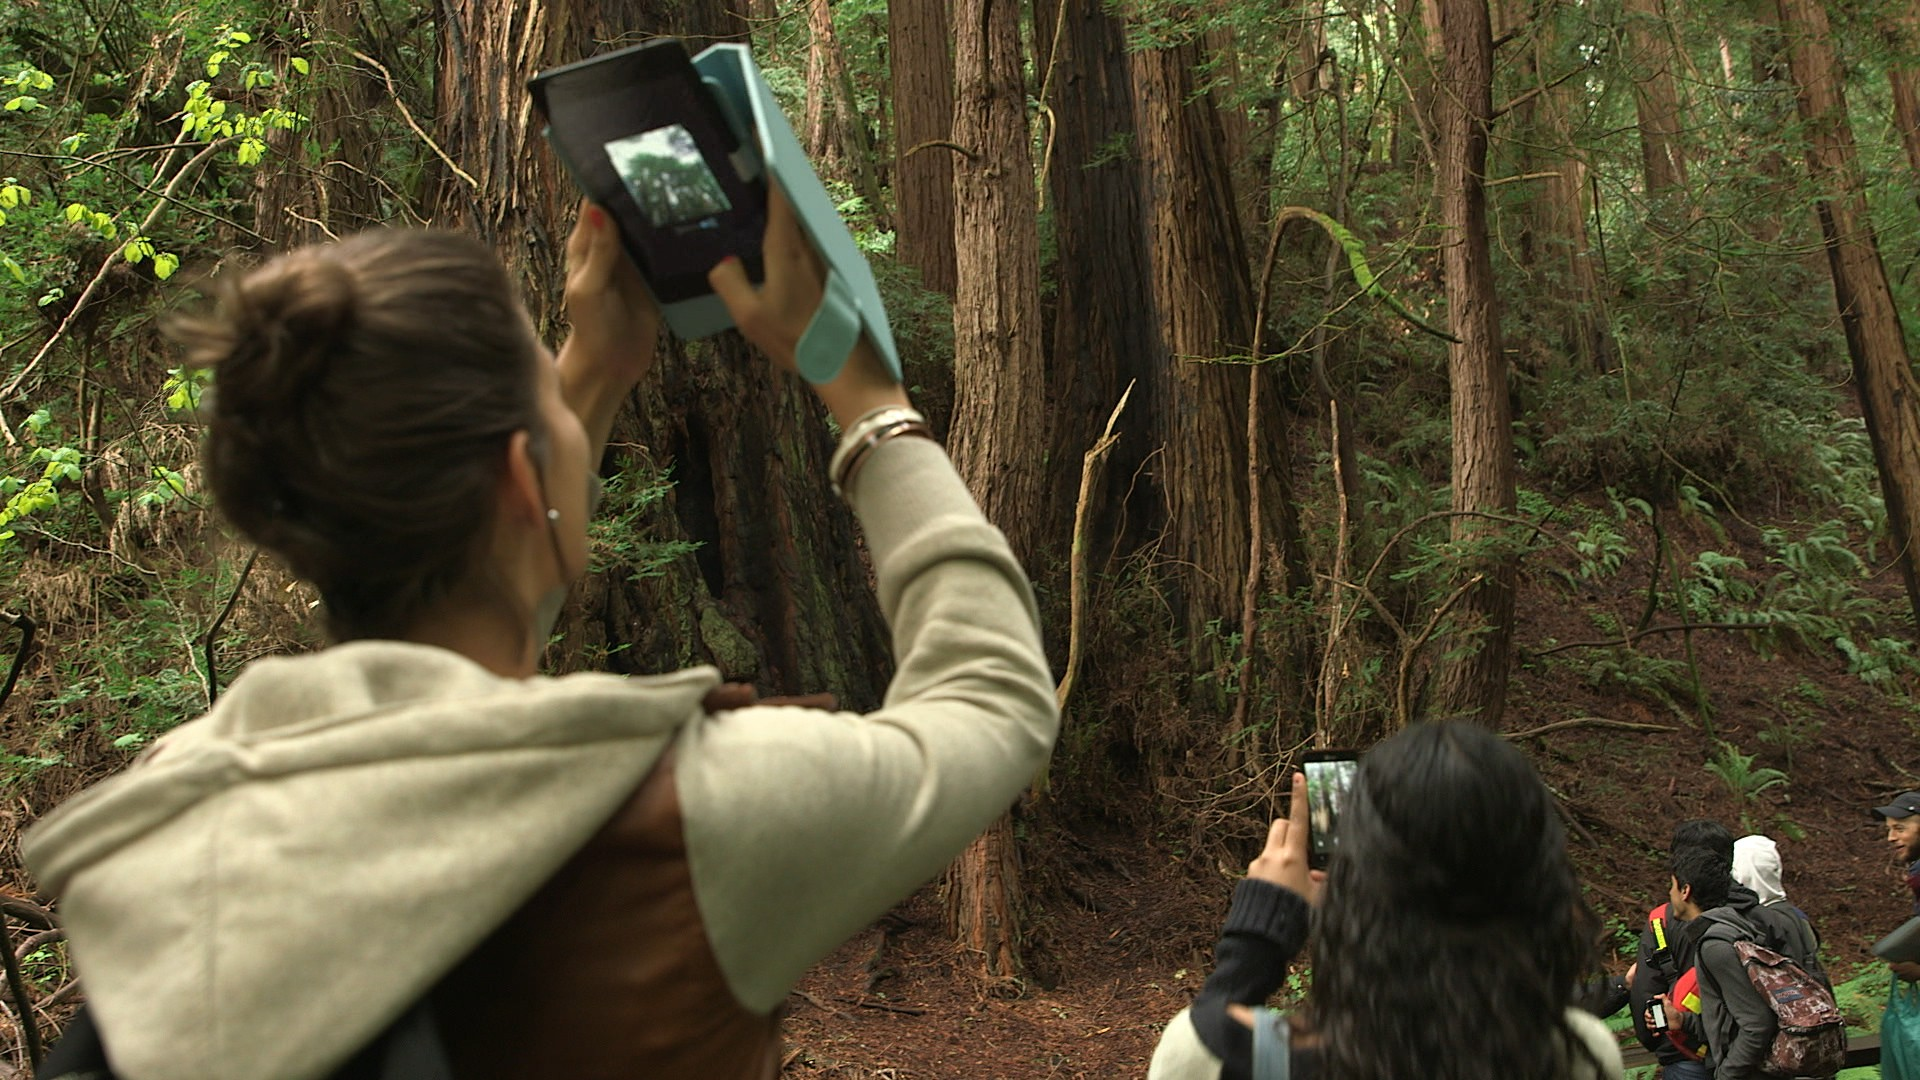 Students use cameras, phones, and tablets to capture their experience in Muir Woods National Monument.